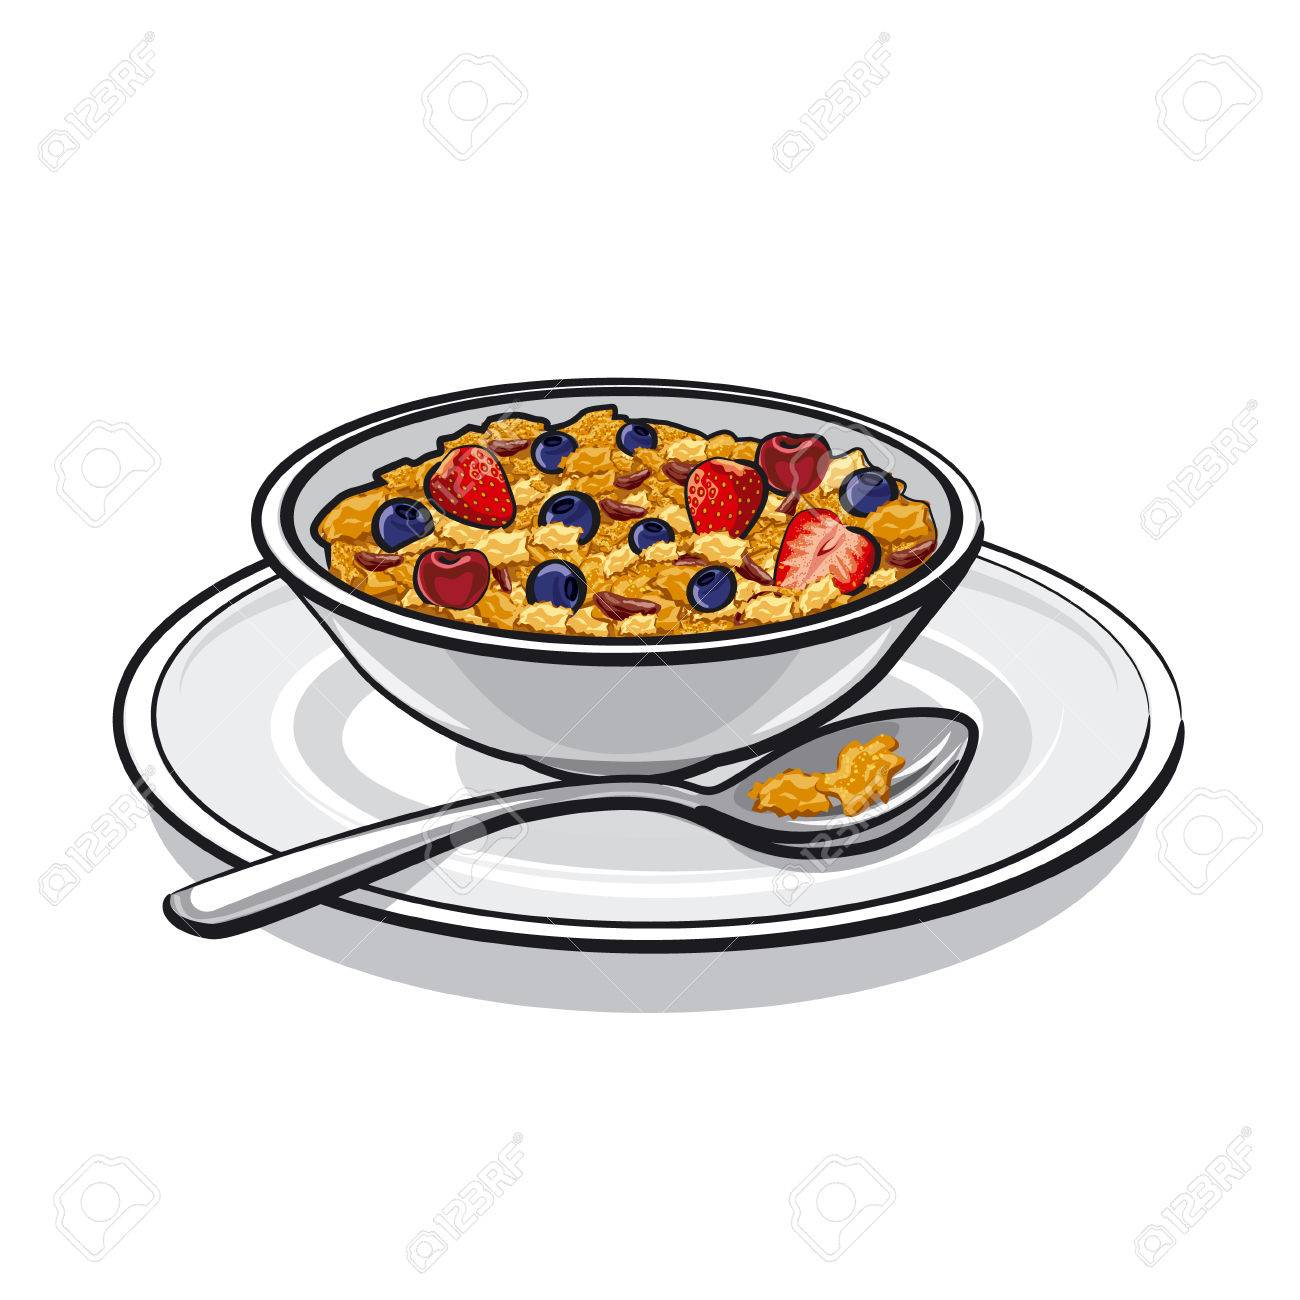 Breakfast Cereal Cliparts.